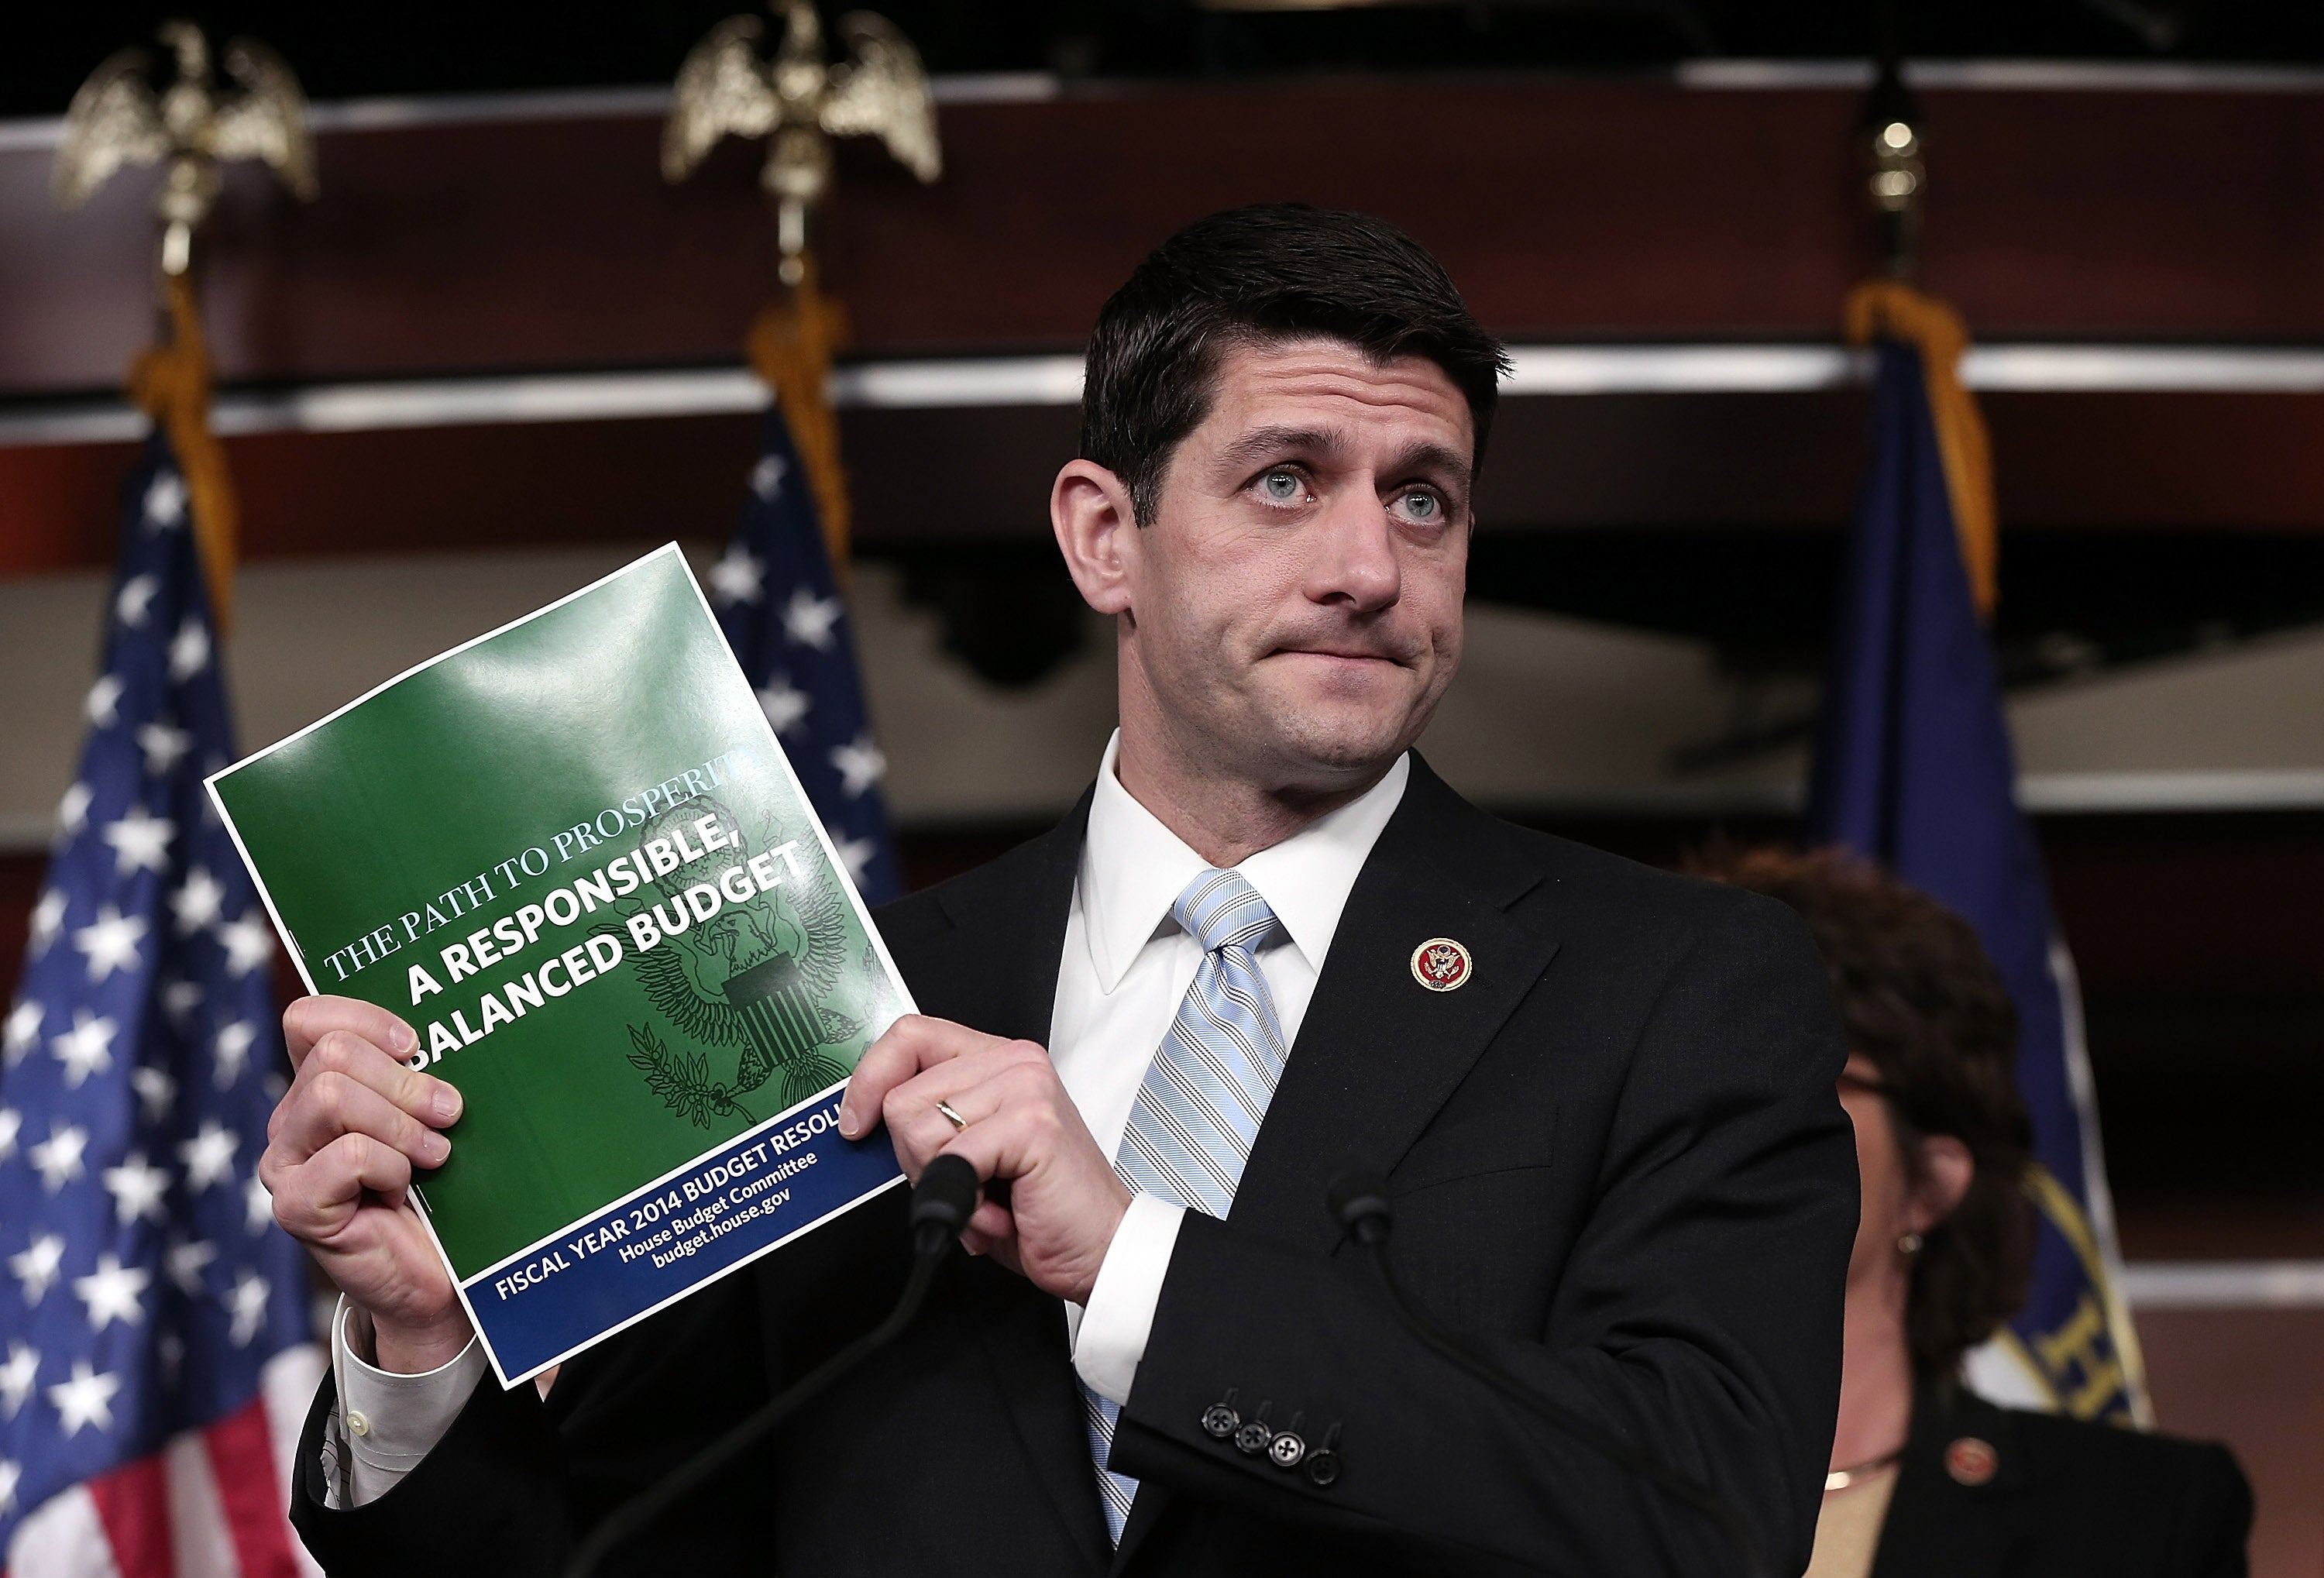 """Paul Ryan presents his """"Path to Prosperity: A responsible balanced budget"""" plan at the Capitol on March 12, 2013."""